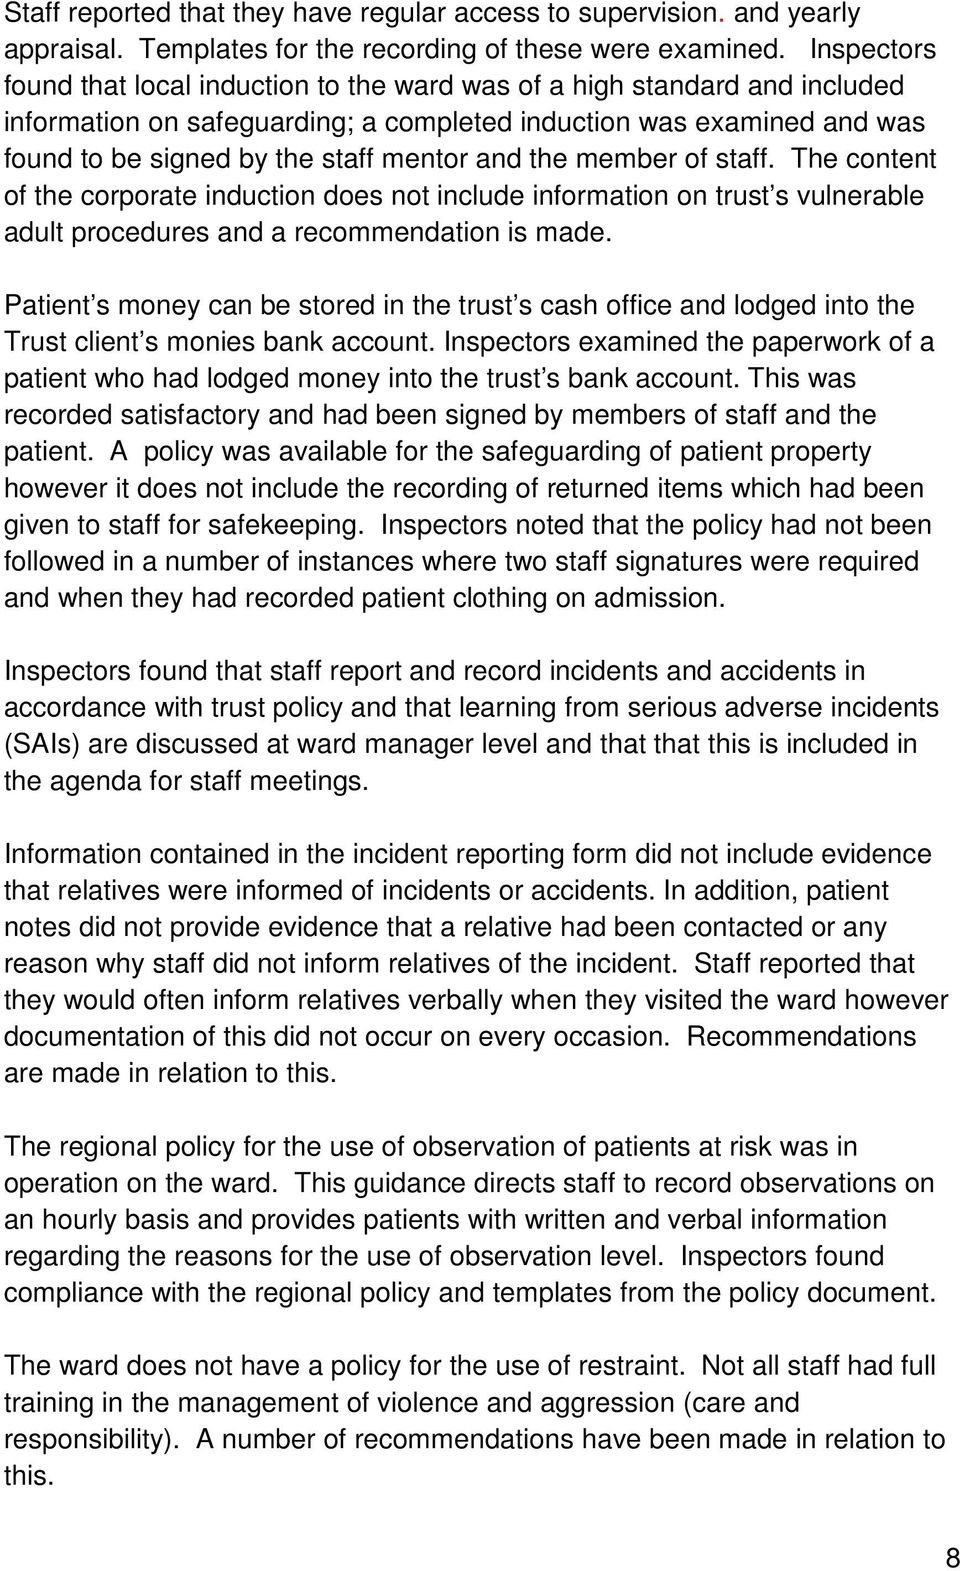 and the member of staff. The content of the corporate induction does not include information on trust s vulnerable adult procedures and a recommendation is made.